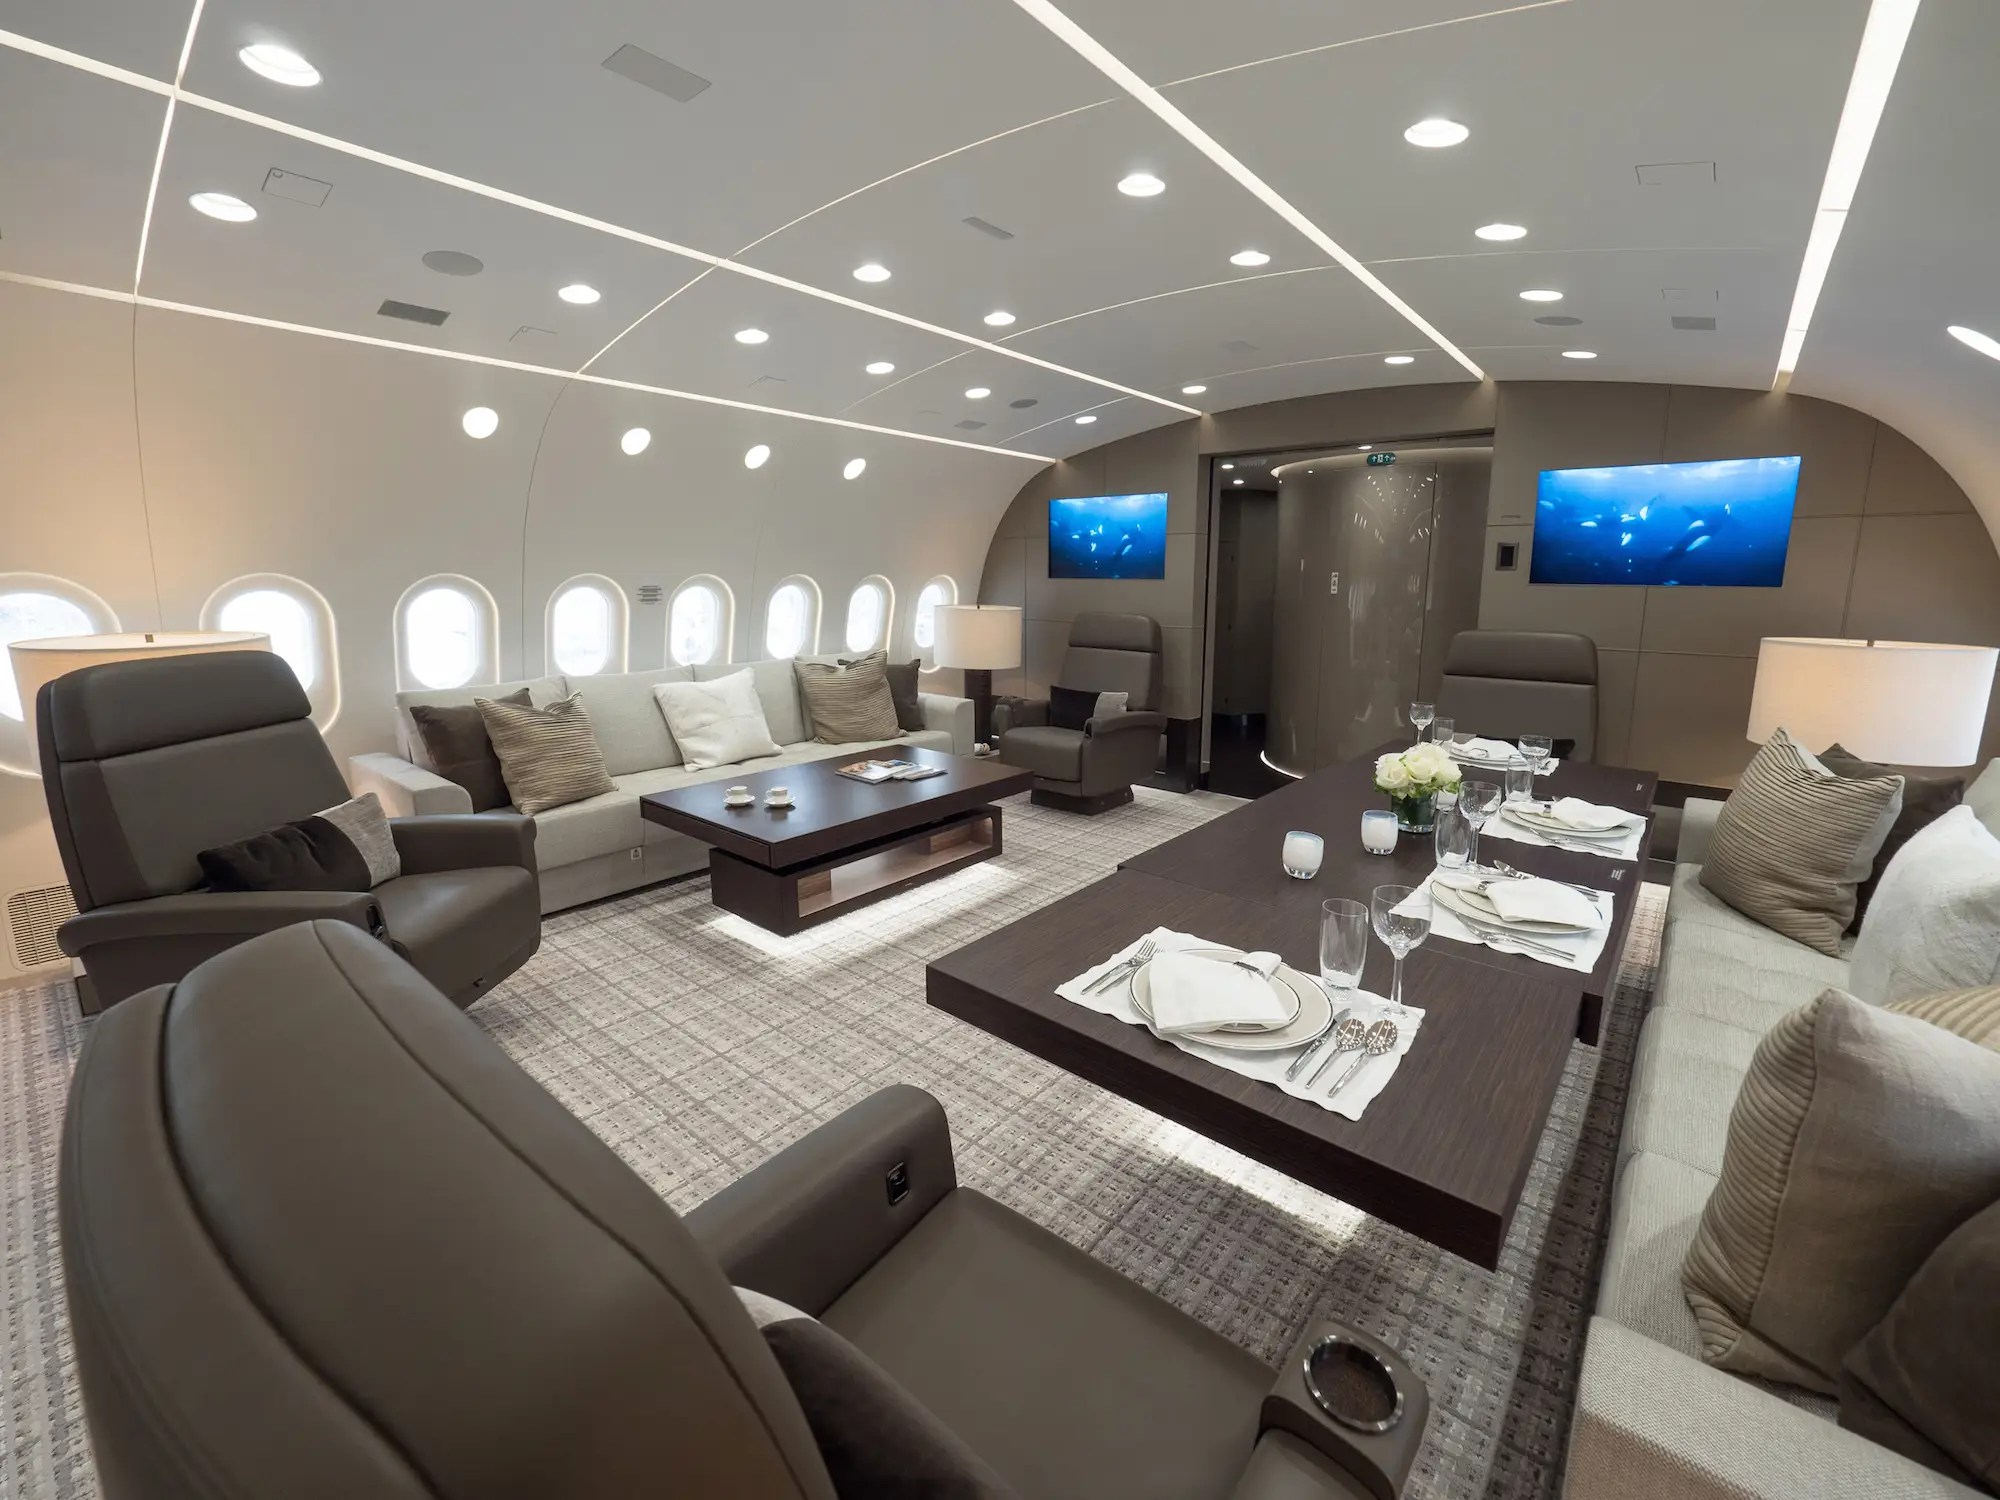 Looking towards the back of the plane, are a pair of divans that can be turned into sleeping accommodations or used as a dining and meeting area. Also located at the rear of the lounge are a pair of 47-inch screens. A stylish round VIP lavatory is located just aft of the lounge.